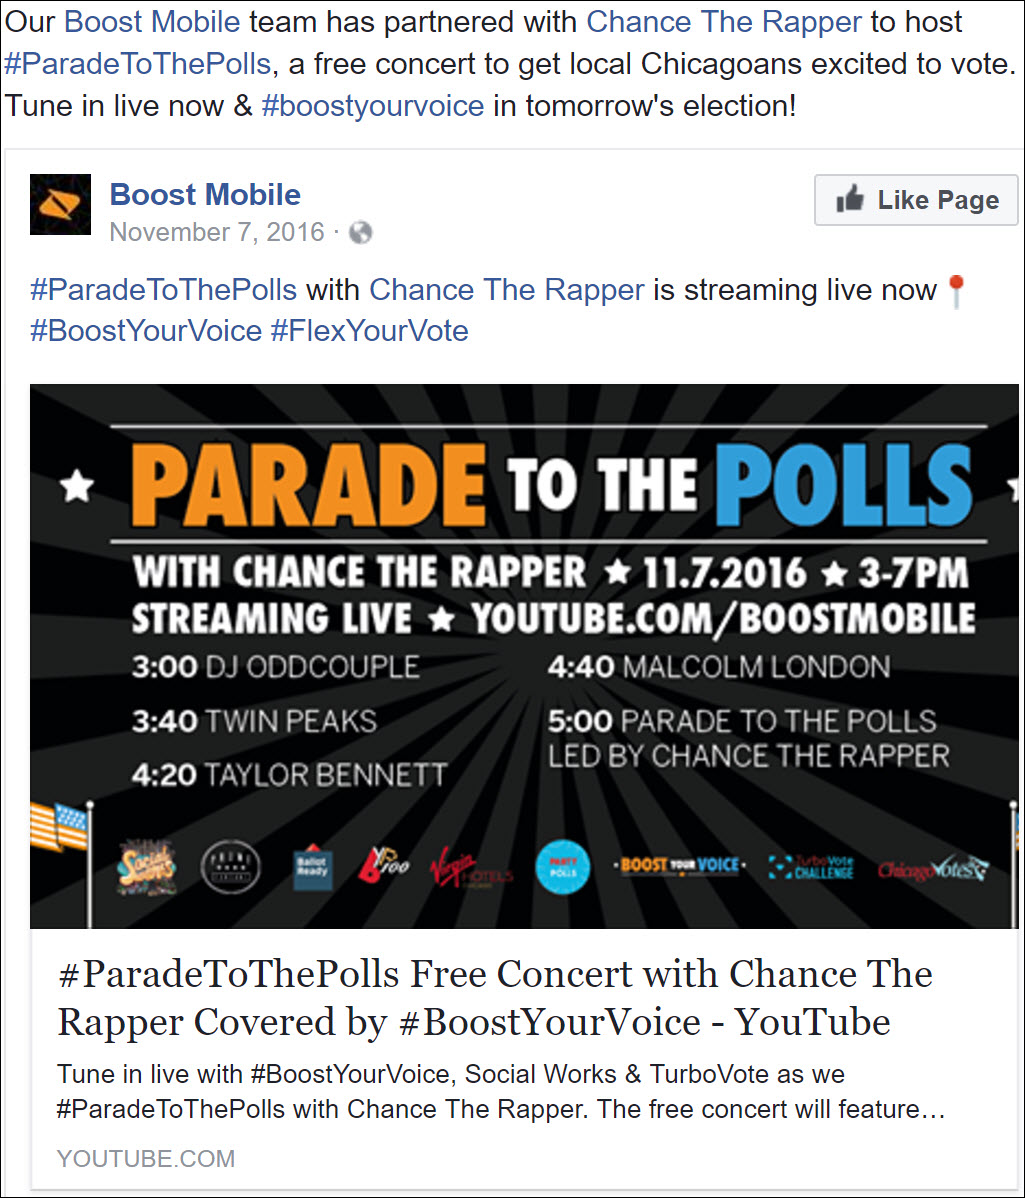 Boost Mobile Parade to the Polls